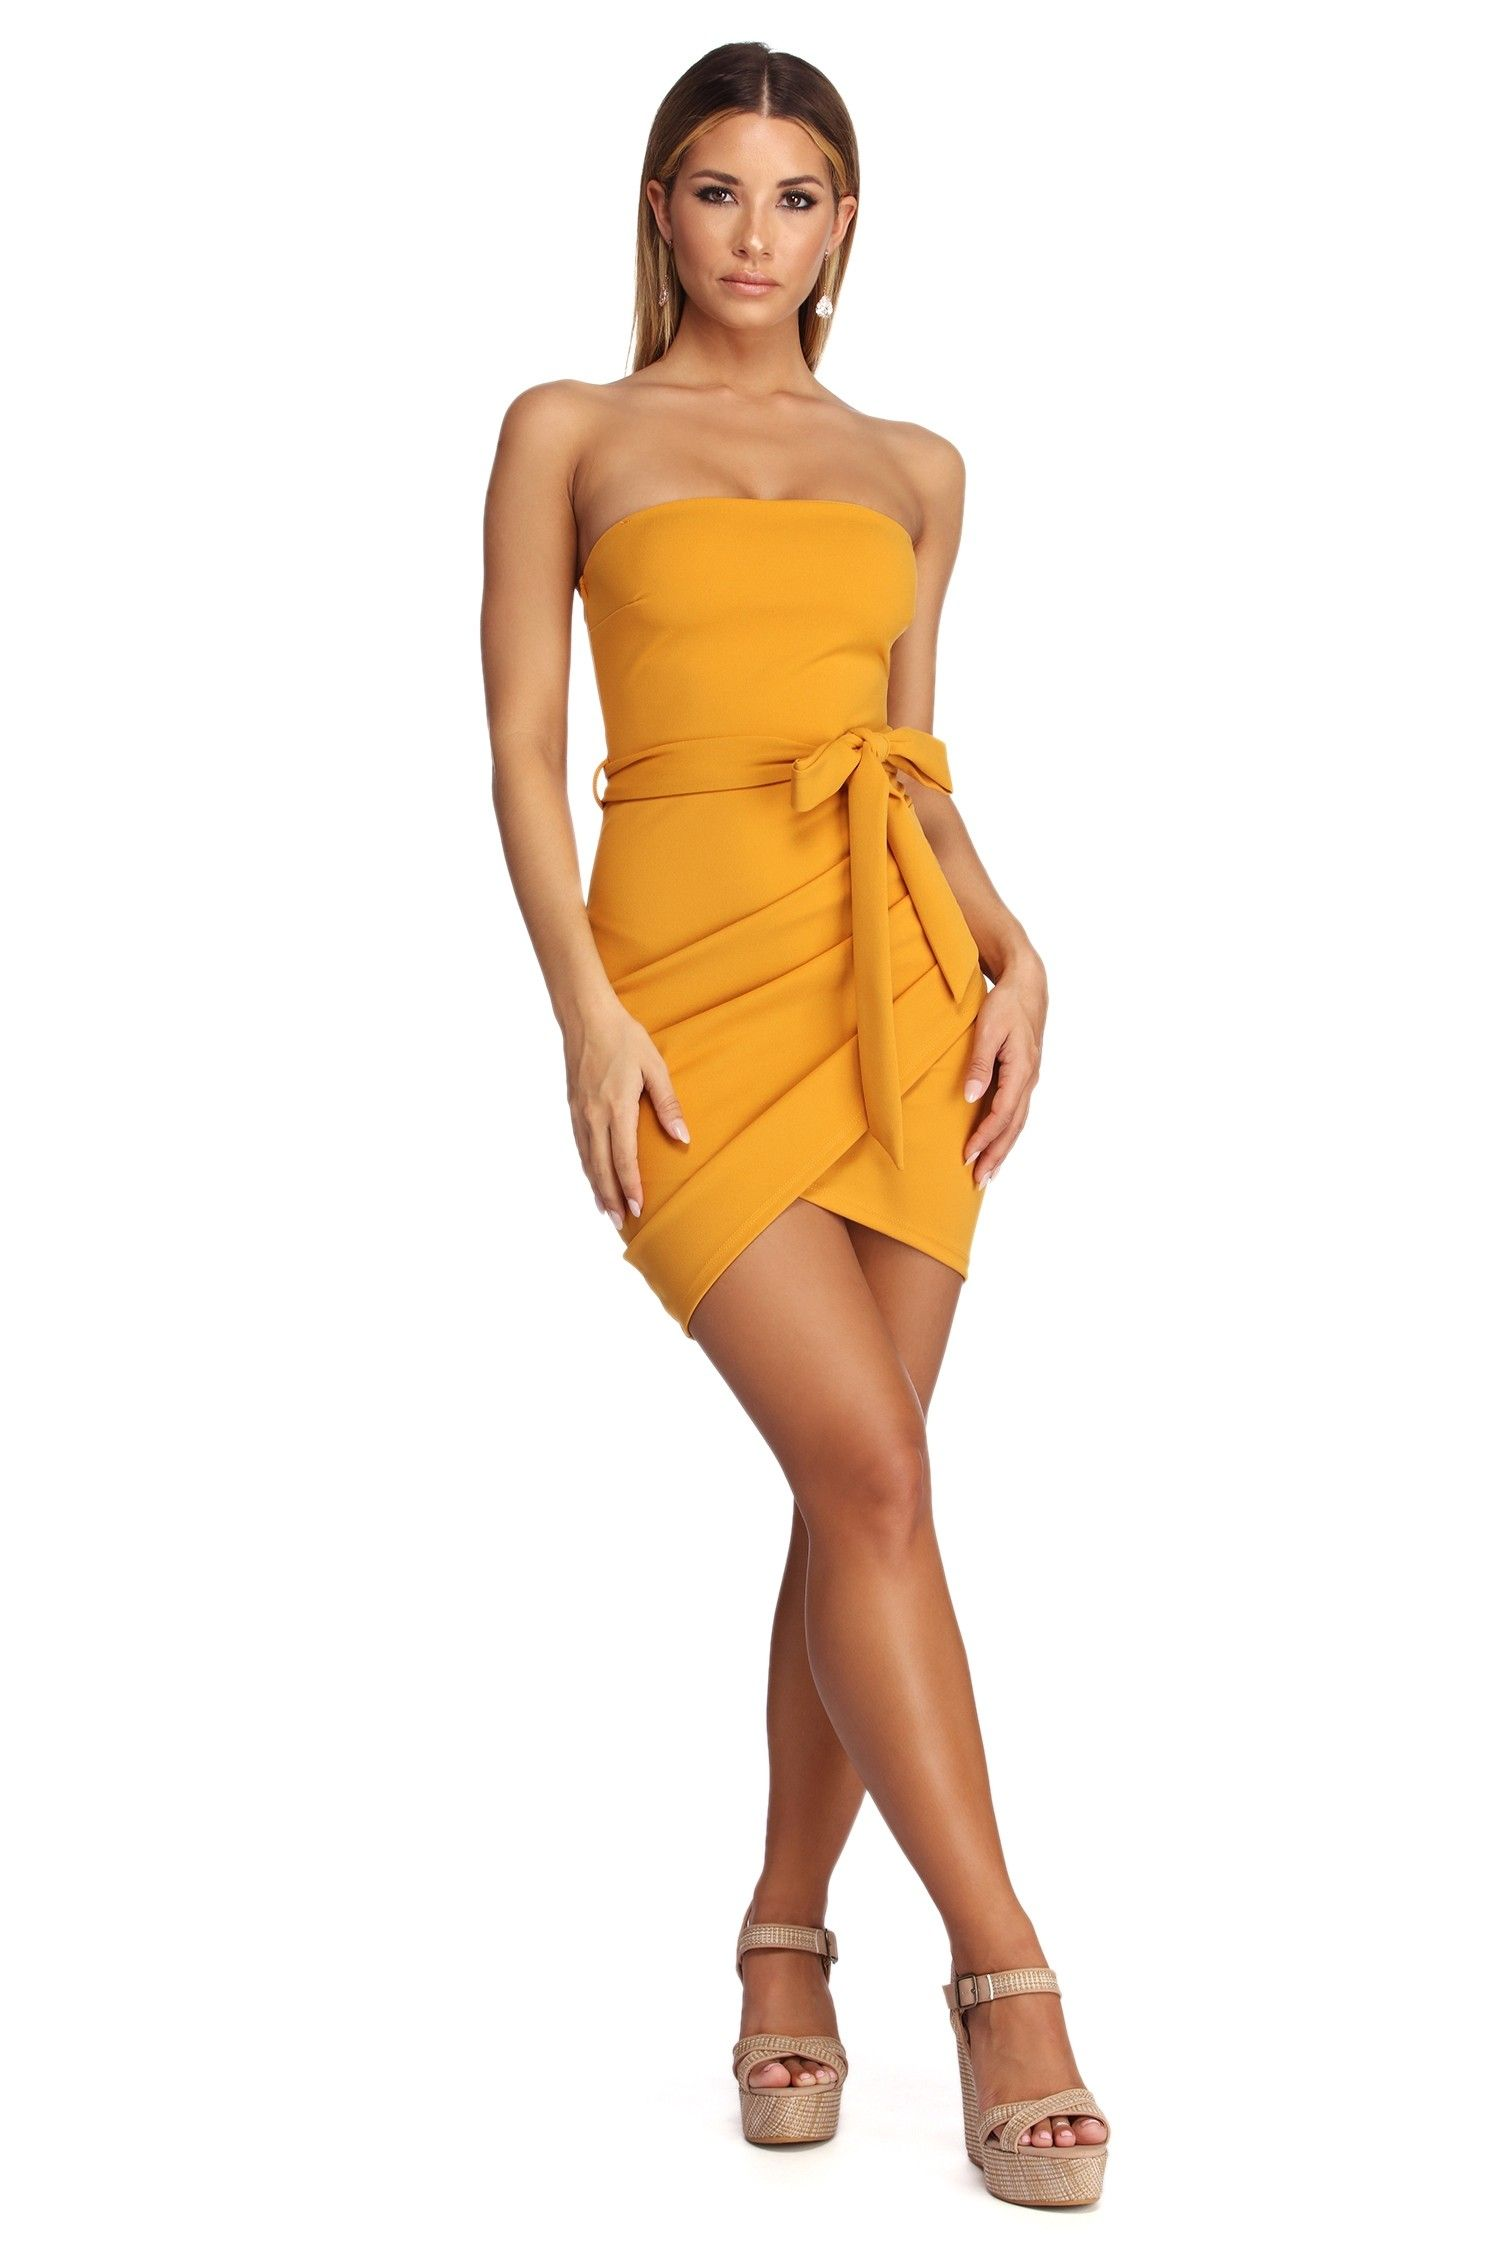 Pin By Almacoproducts Com On Windsor Dresses Fashion Yellow Mini Dress [ 2247 x 1500 Pixel ]